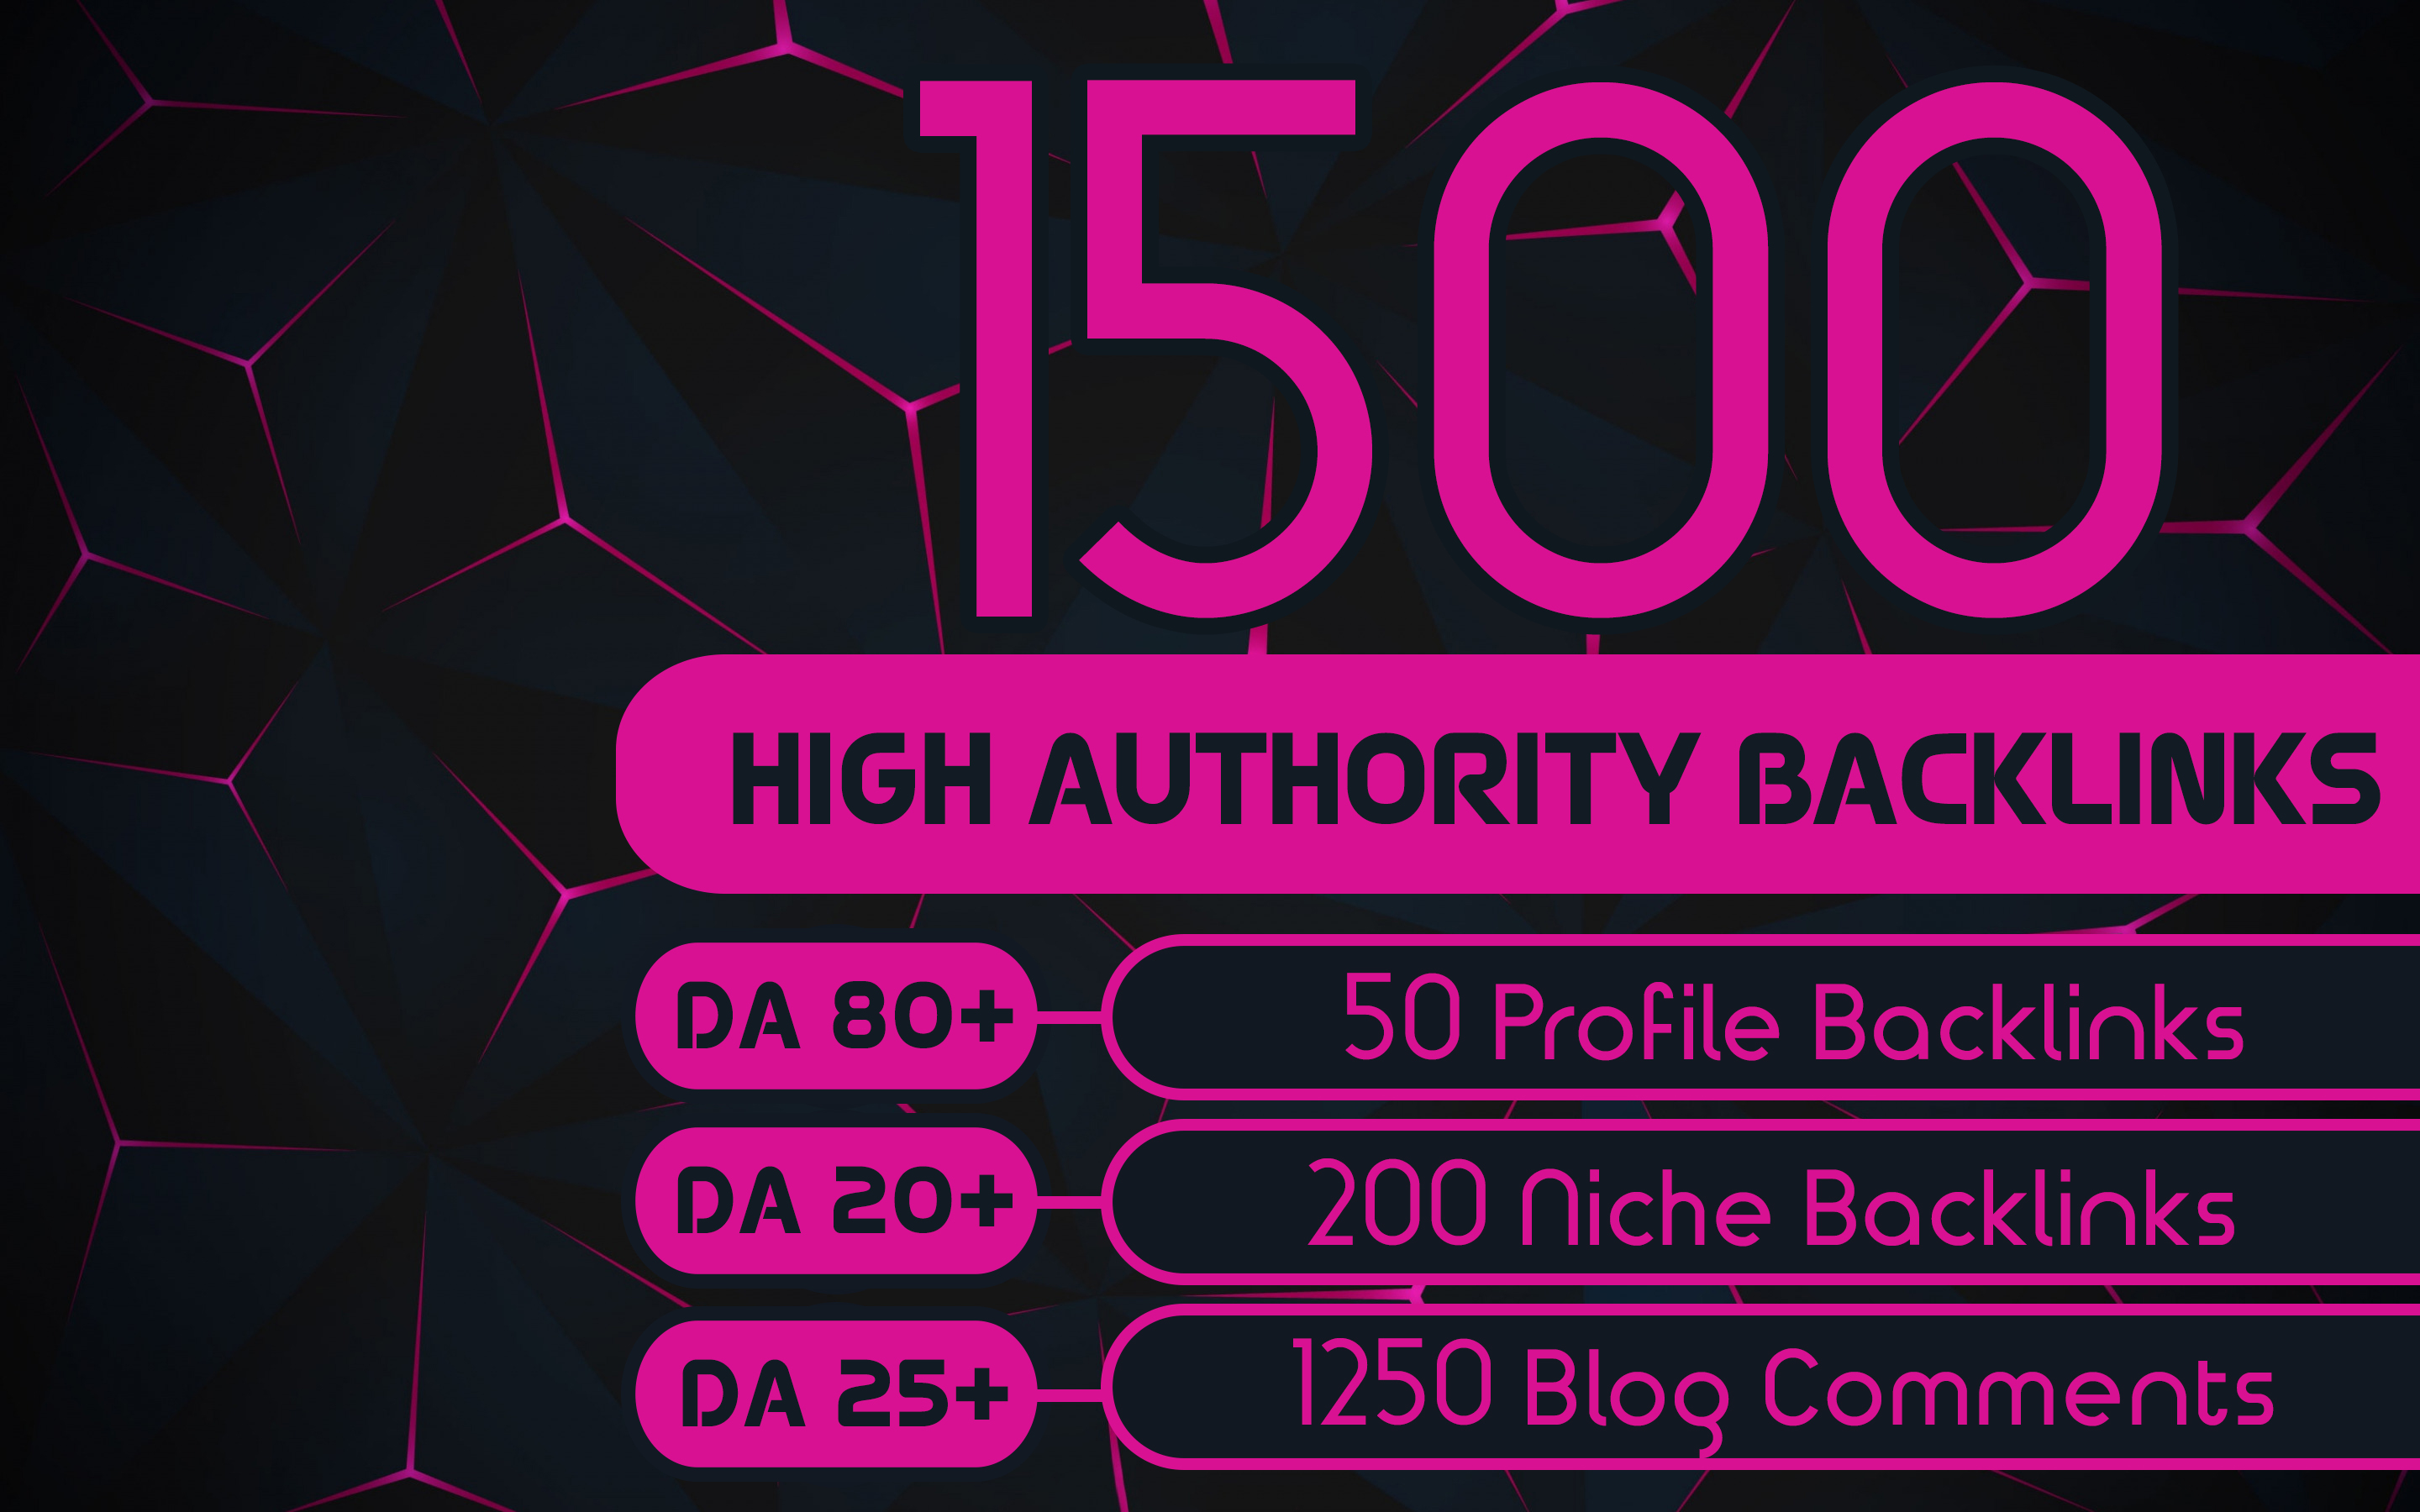 Get 1500 High Authority Backlinks,  Quality Blog Comments,  Profile Backlinks,  Niche Relevant Backlink